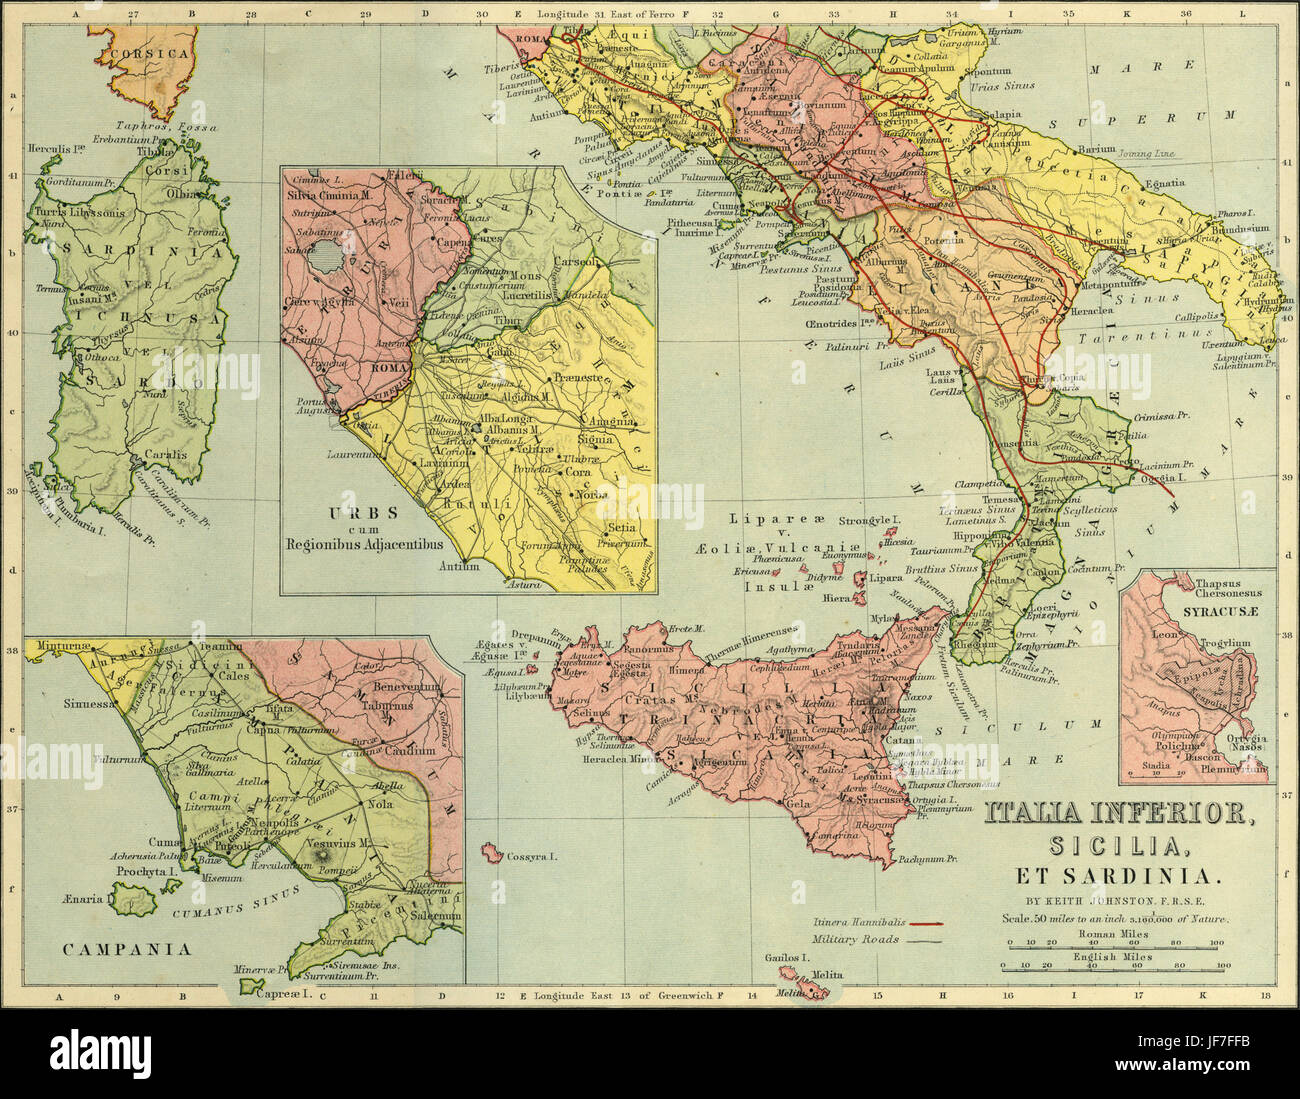 Map of Italia Inferior, Sicilia, Sardinia - southern Italy. Showing magnified views of Campania, Urbs and Syracuse, - Stock Image